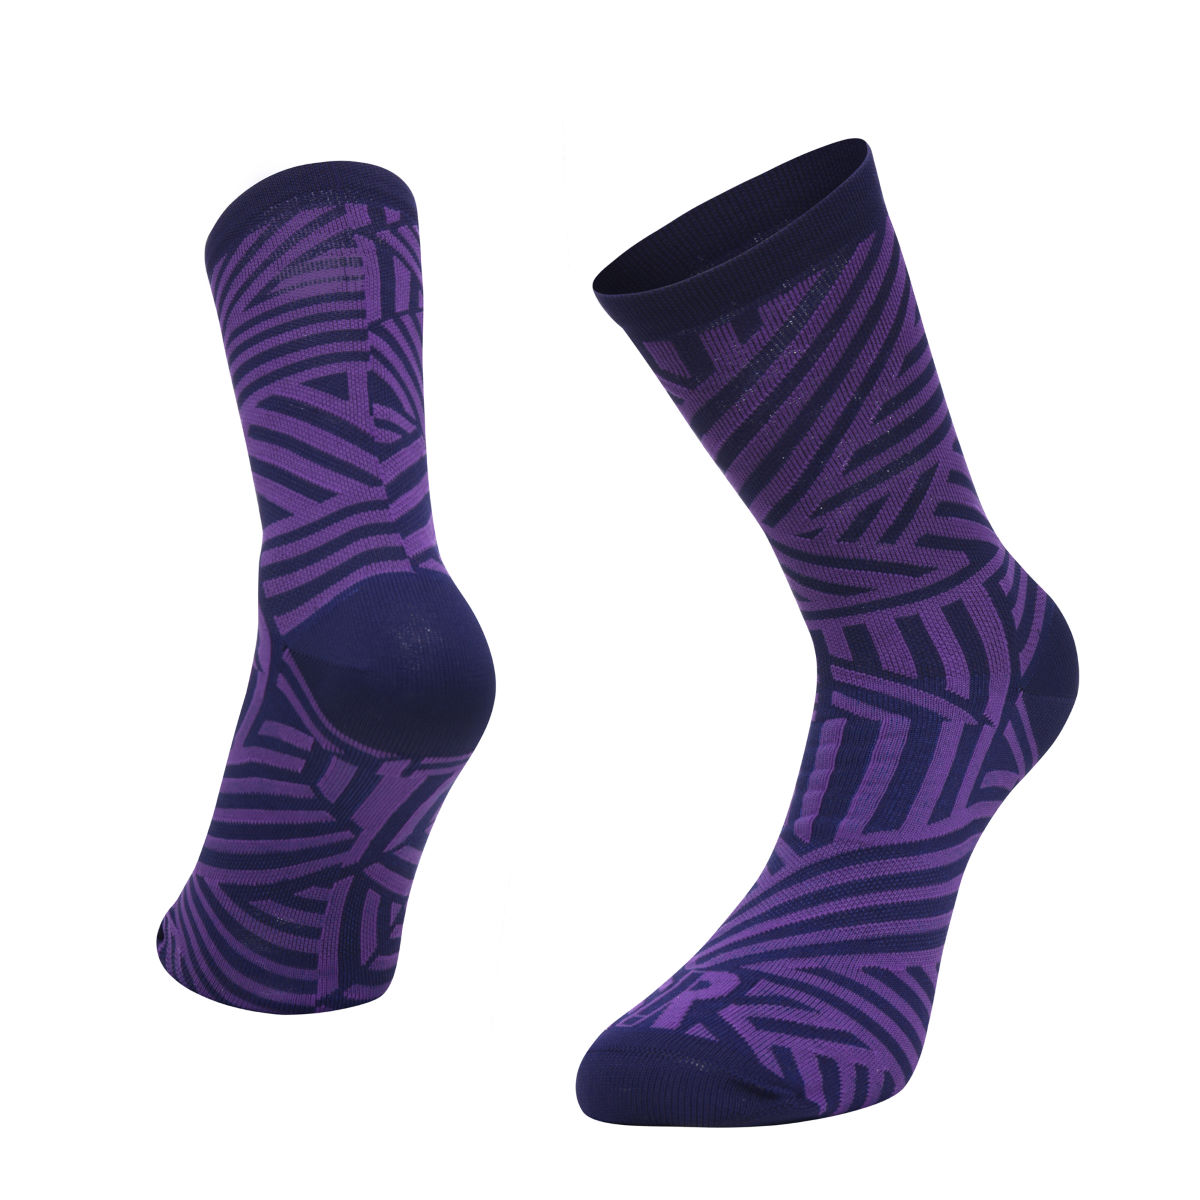 Ratio Dash 16 cm Sock (Navy/Purple) - Calcetines